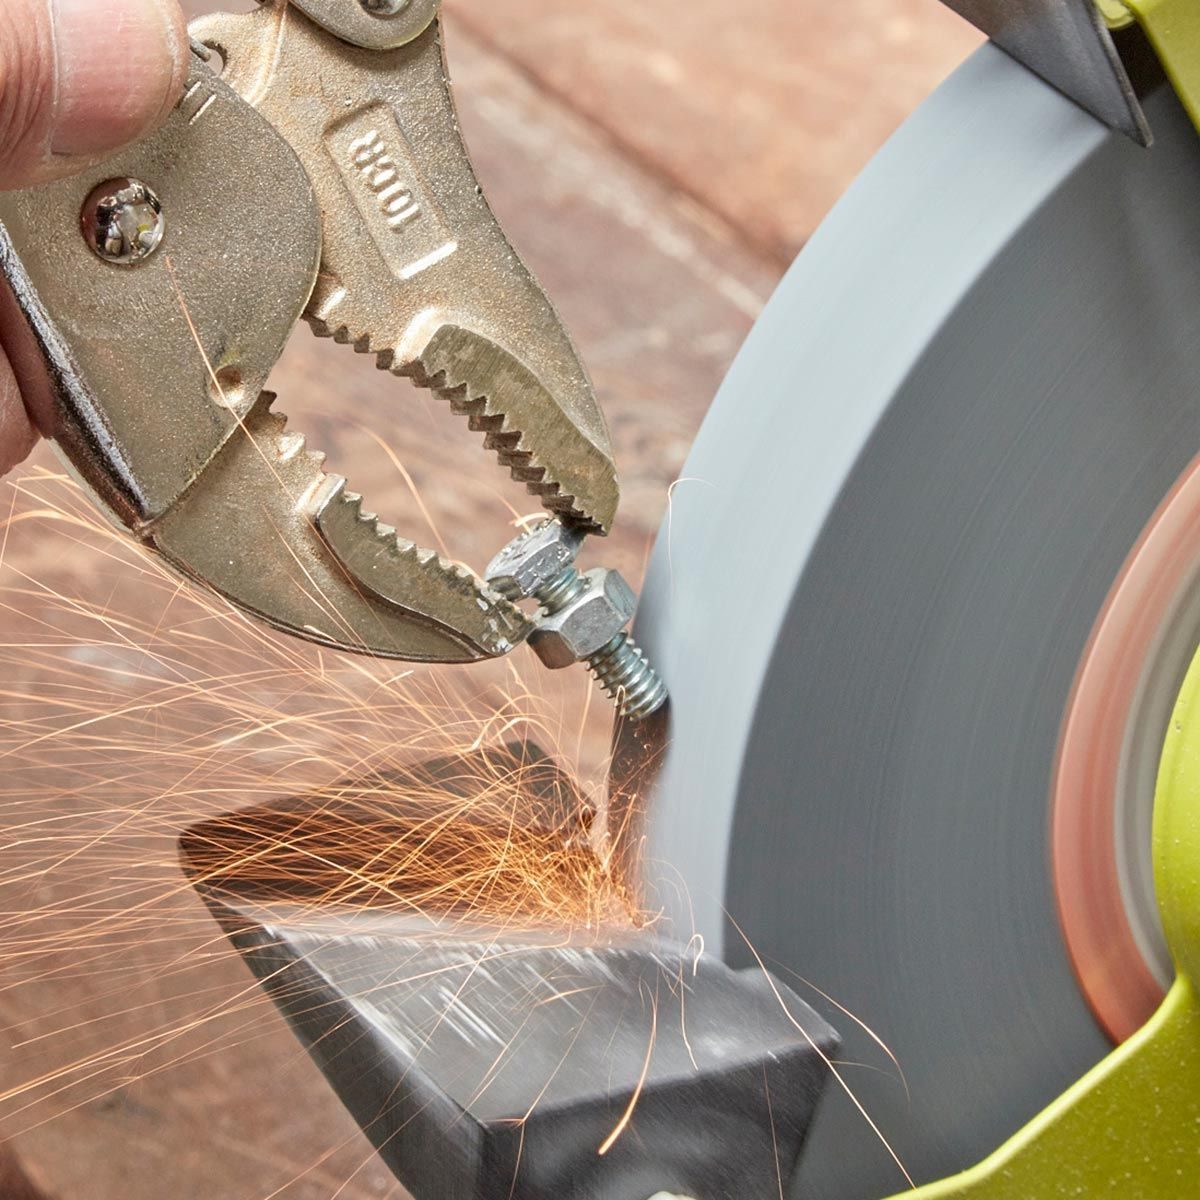 Remarkable 15 Things All Diyers Should Know About Bench Grinders You Ncnpc Chair Design For Home Ncnpcorg